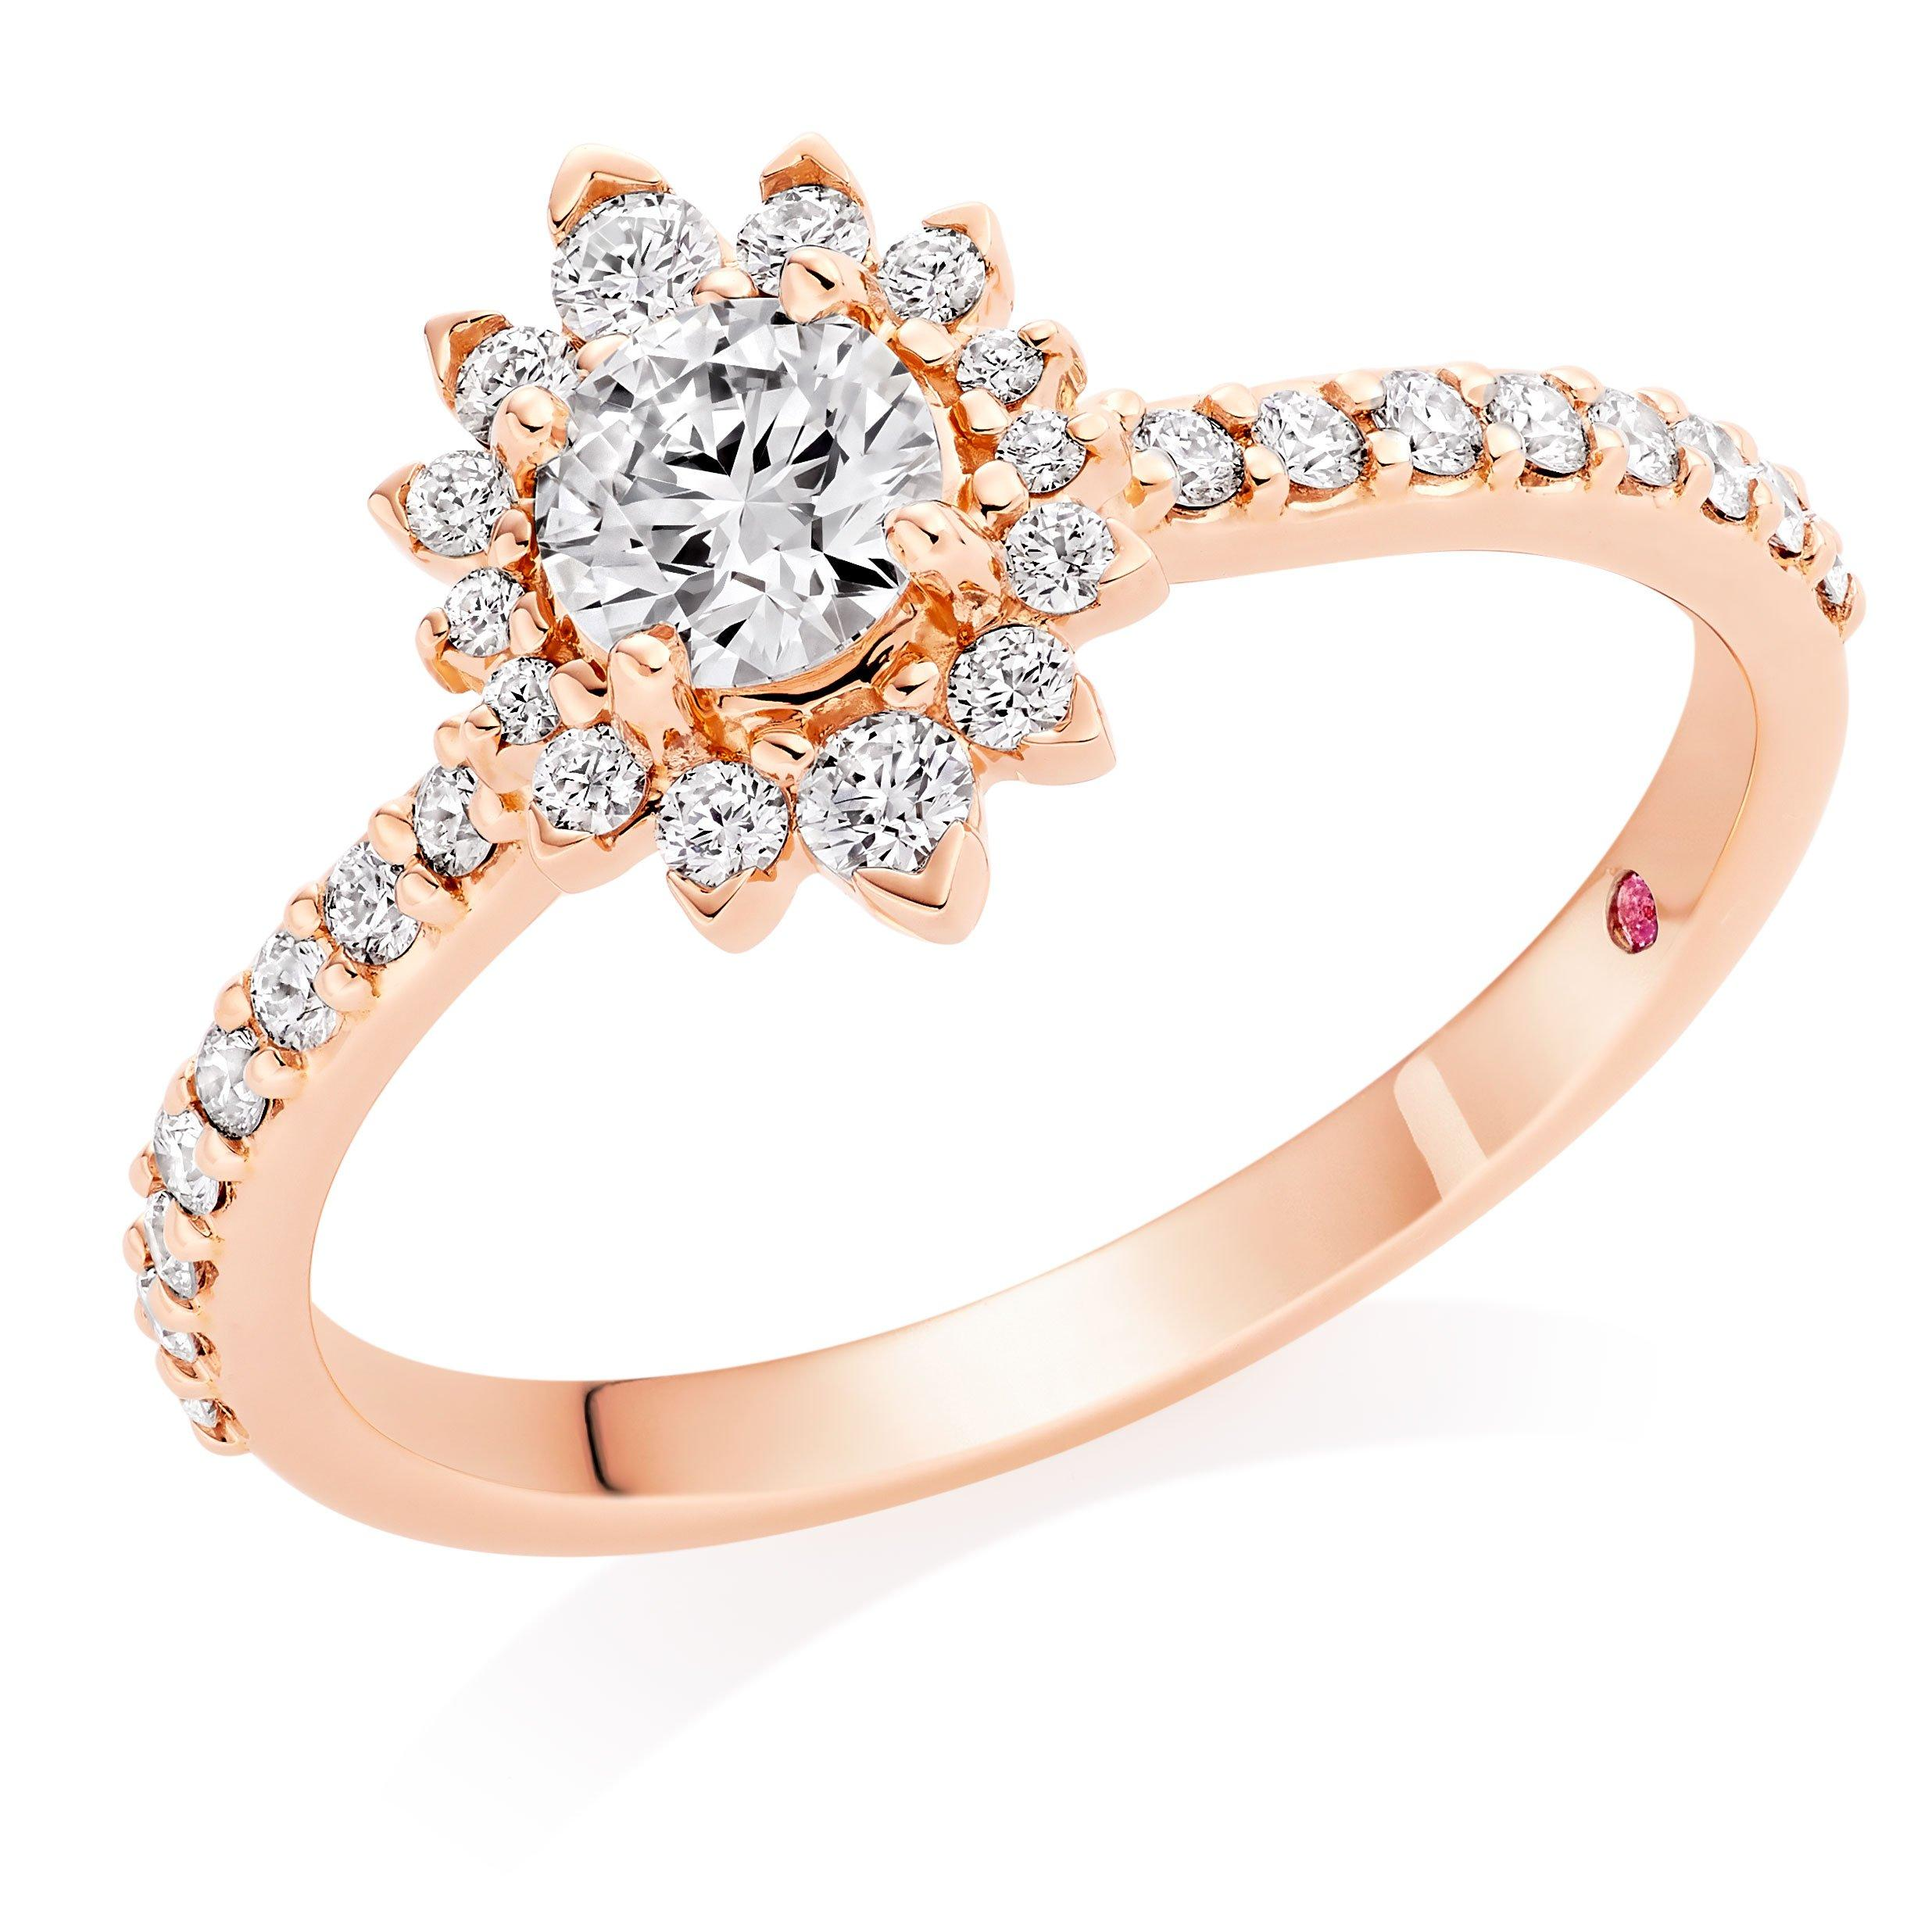 Hearts On Fire Hayley Paige Behati 18ct Rose Gold Diamond Halo Ring